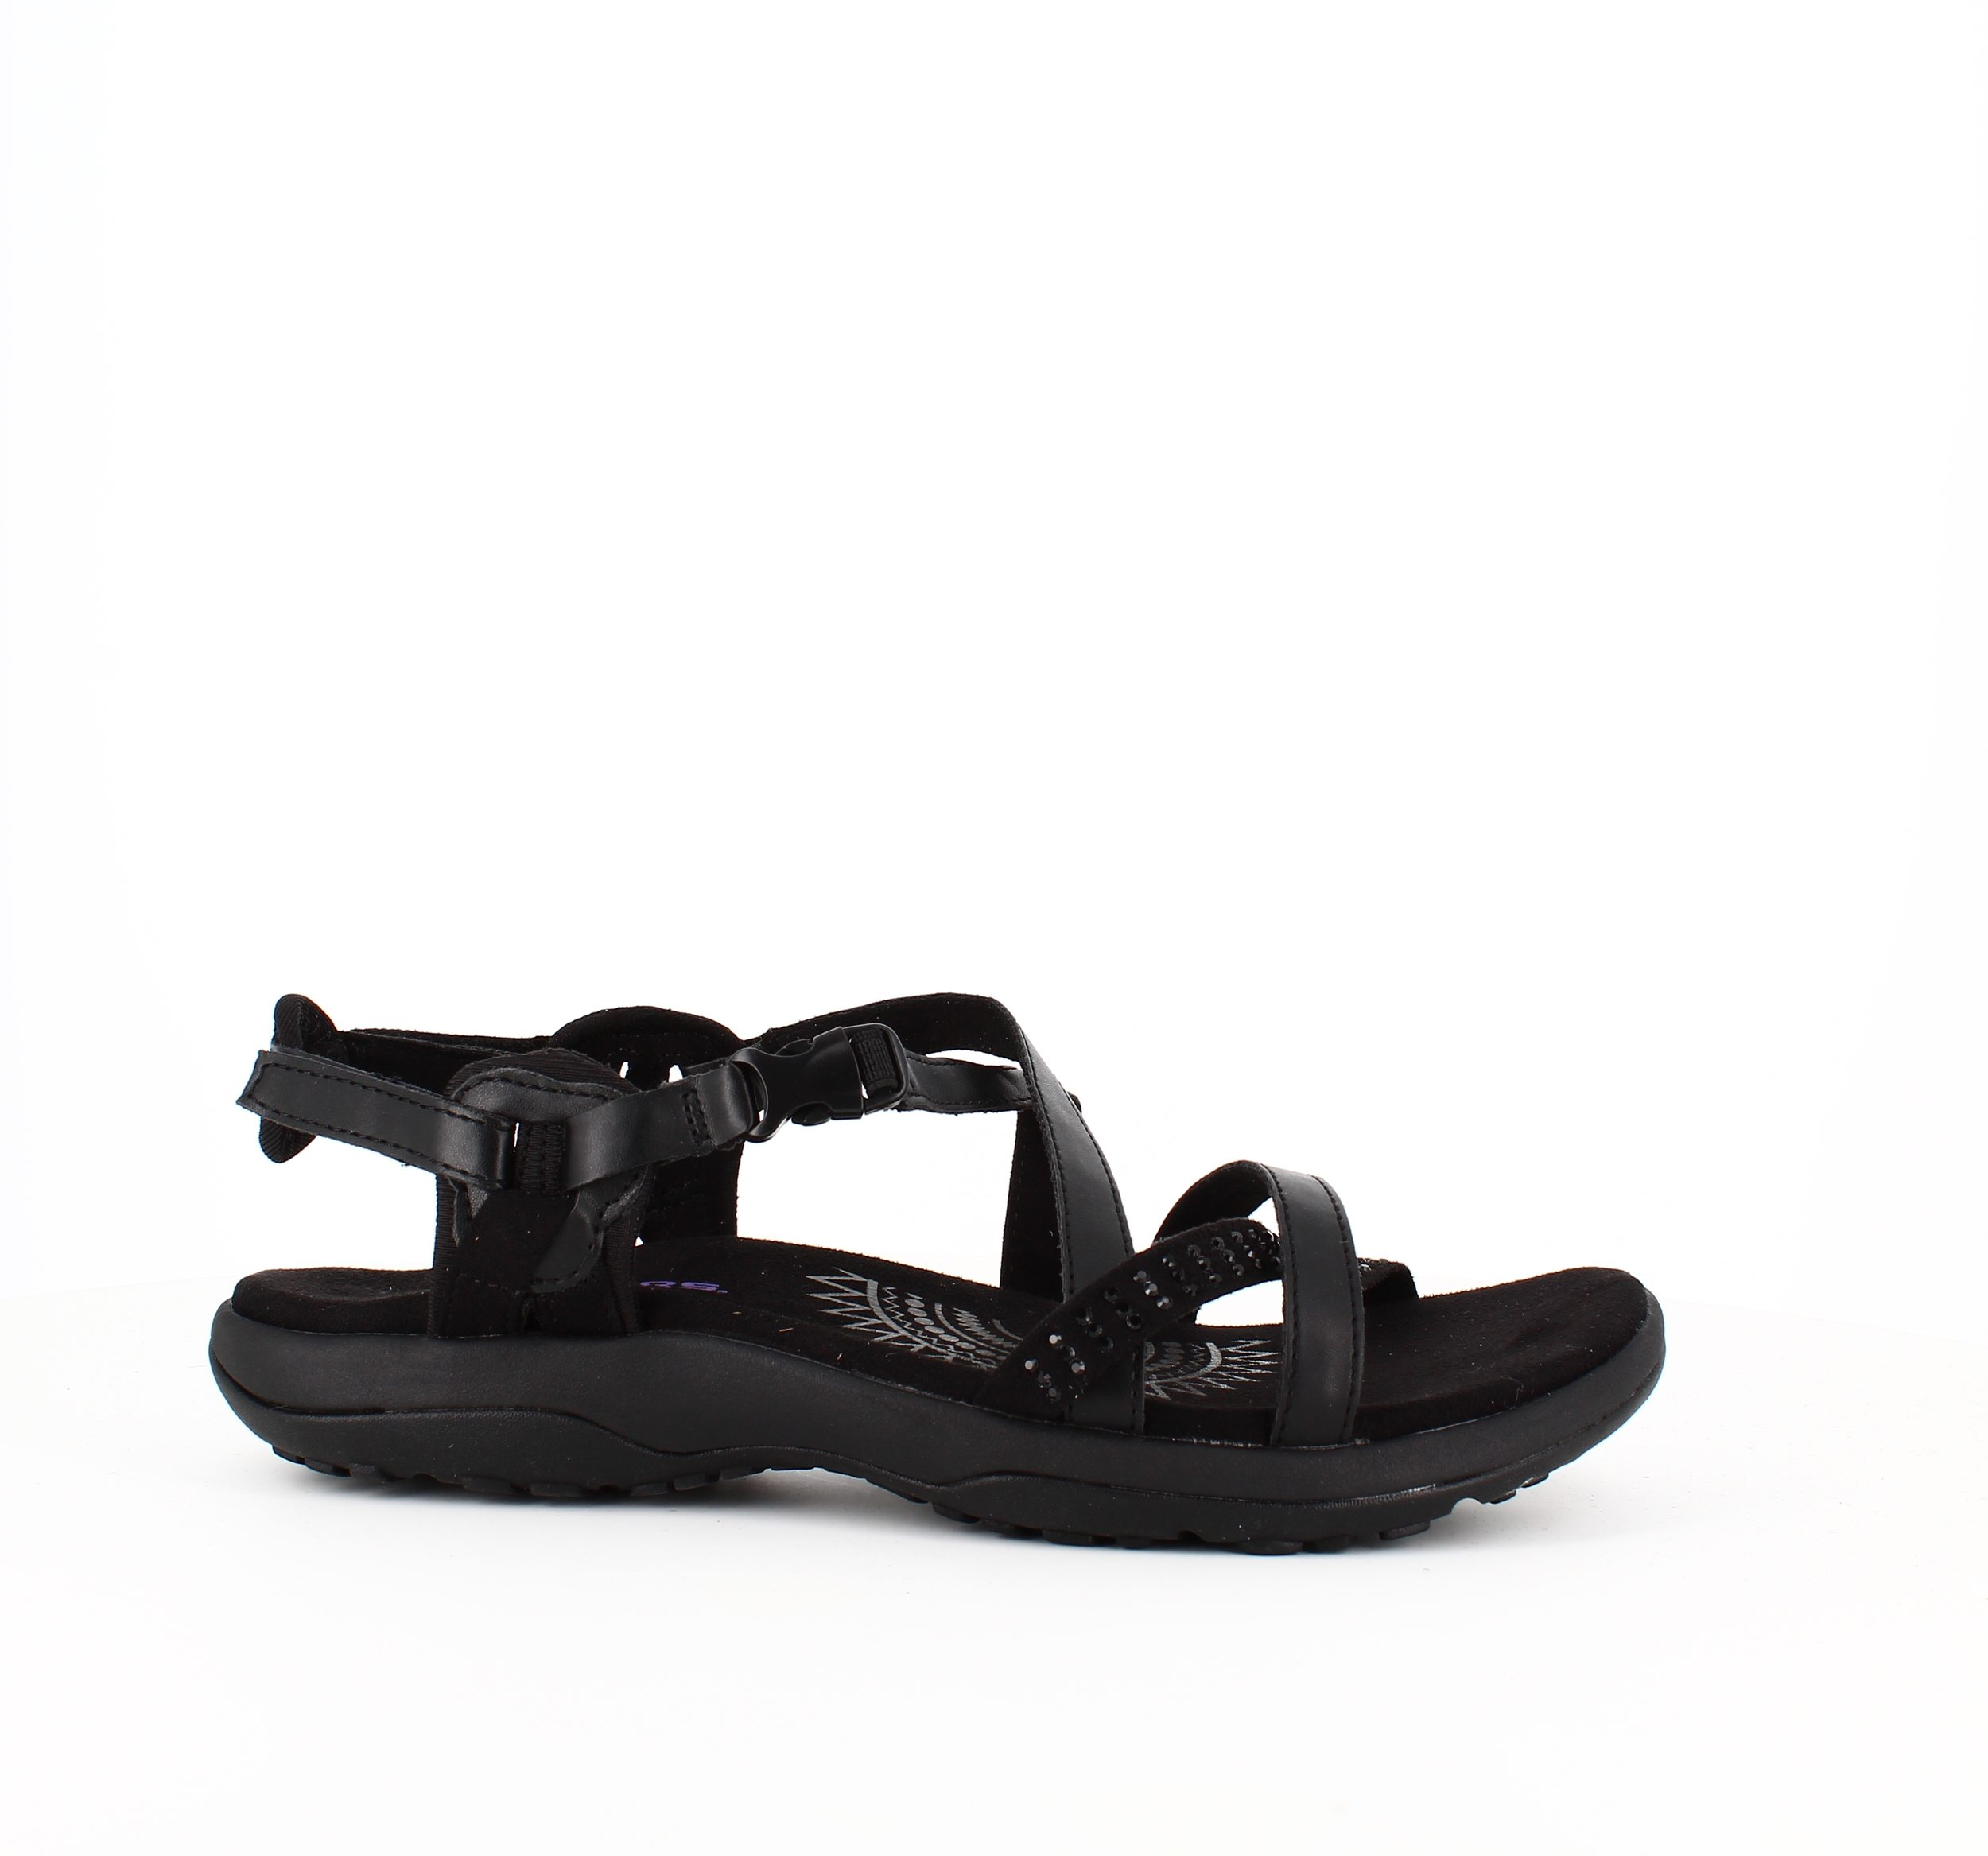 Image of   Skechers sandal i sort med smalle remme - 37